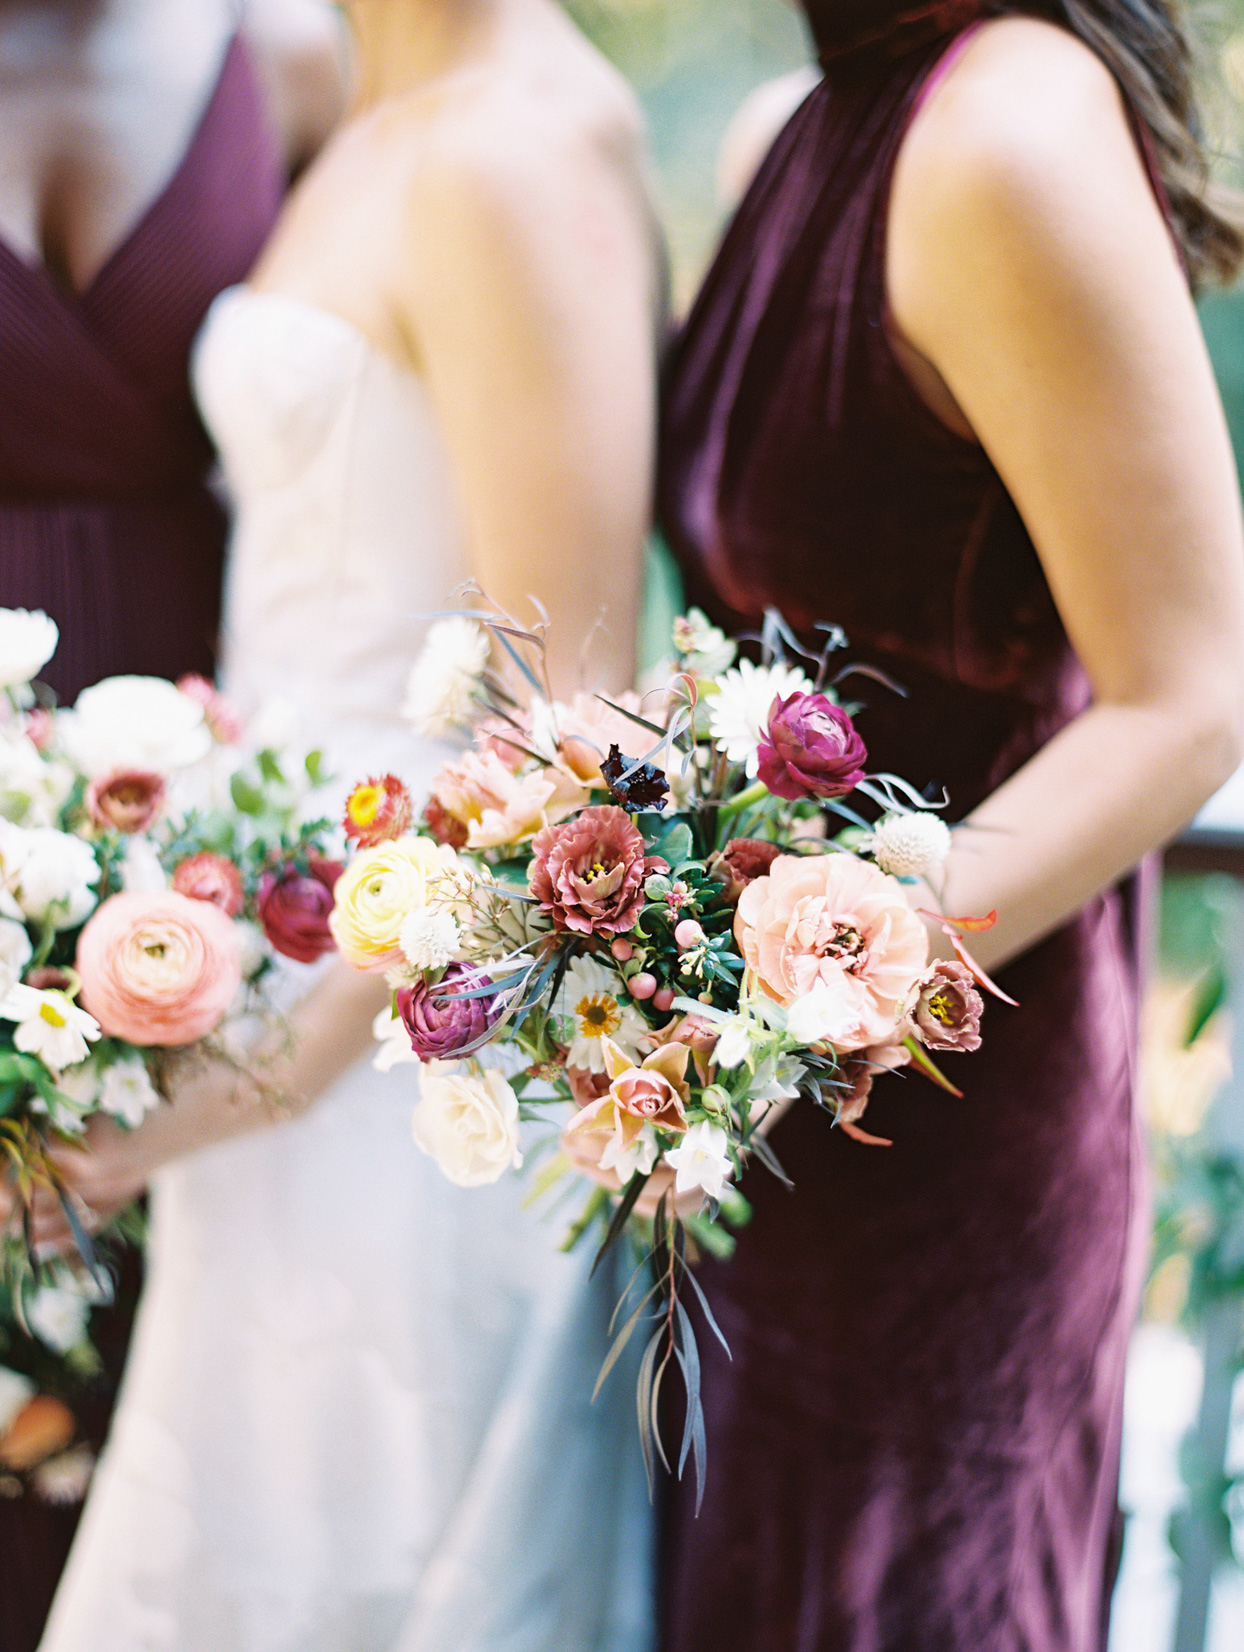 bridesmaids in deep burgundy dresses holding pink, yellow, and purple floral bouquets